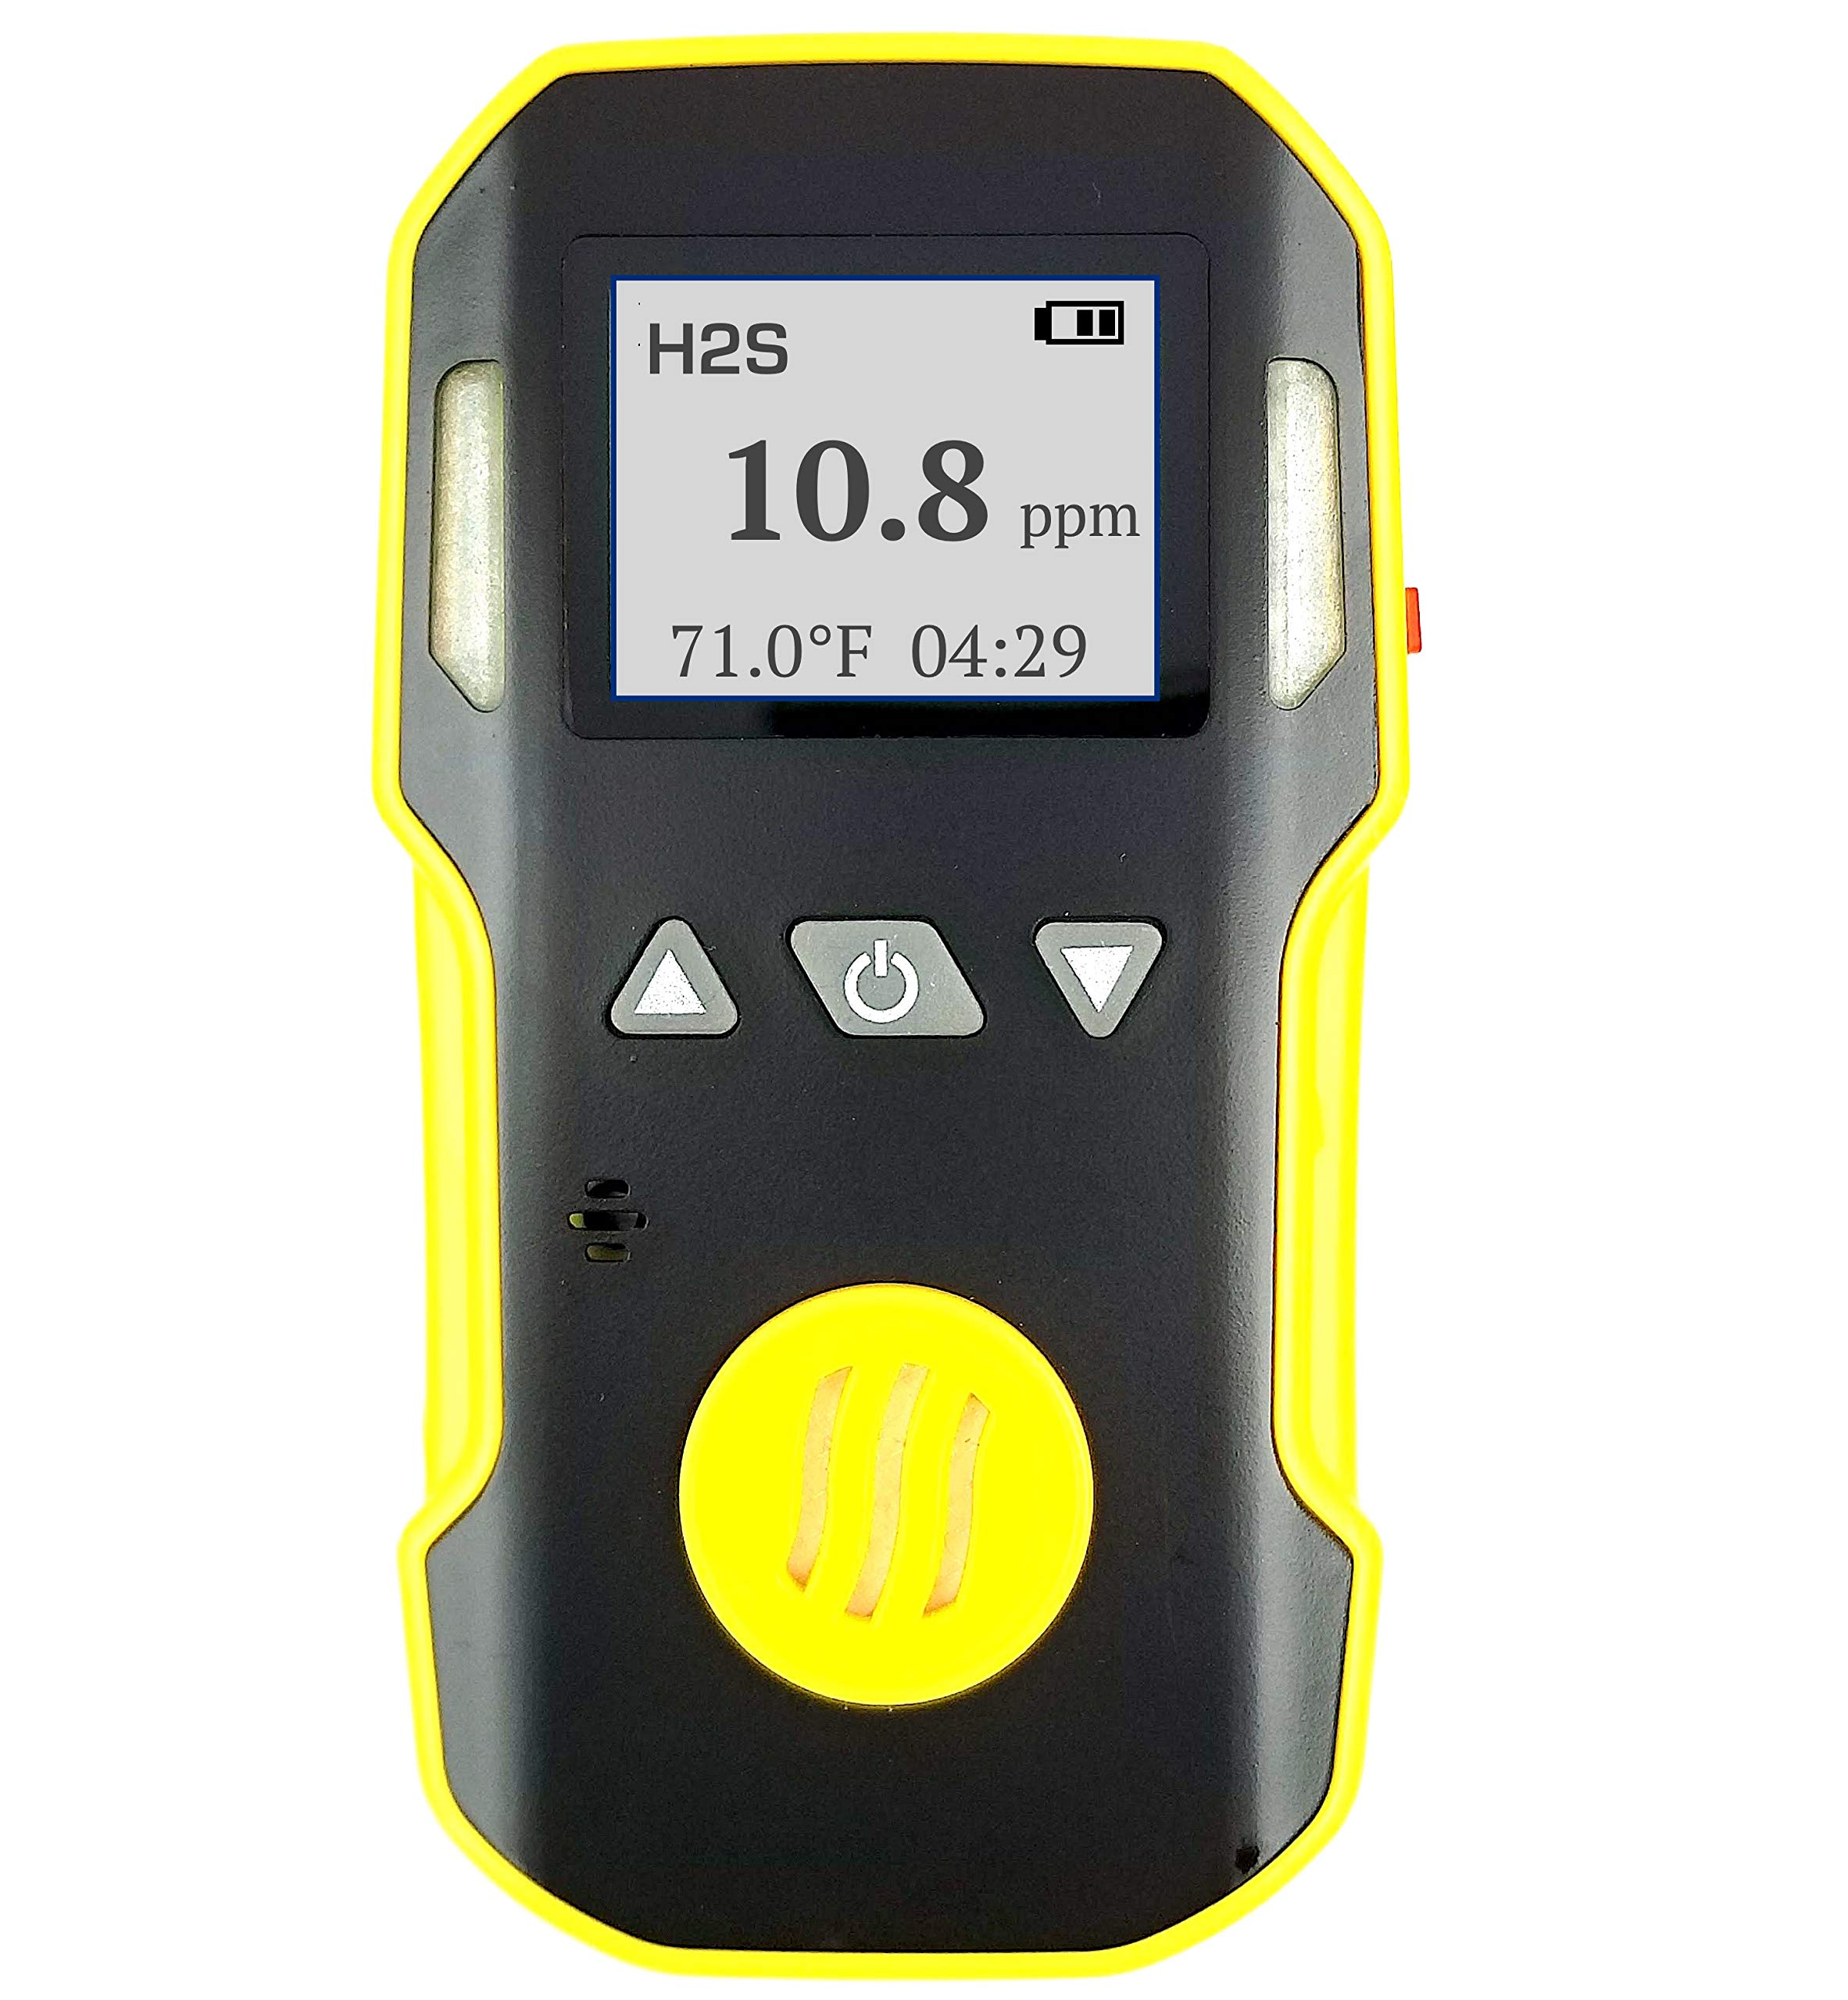 Hydrogen Sulfide H2S Detector Meter | Professional | Water, Dust & Explosion Proof | Li-ion Battery 1500mAh | Adjustable Sound, Light & Vibration Alarms | 0-100ppm H2S |